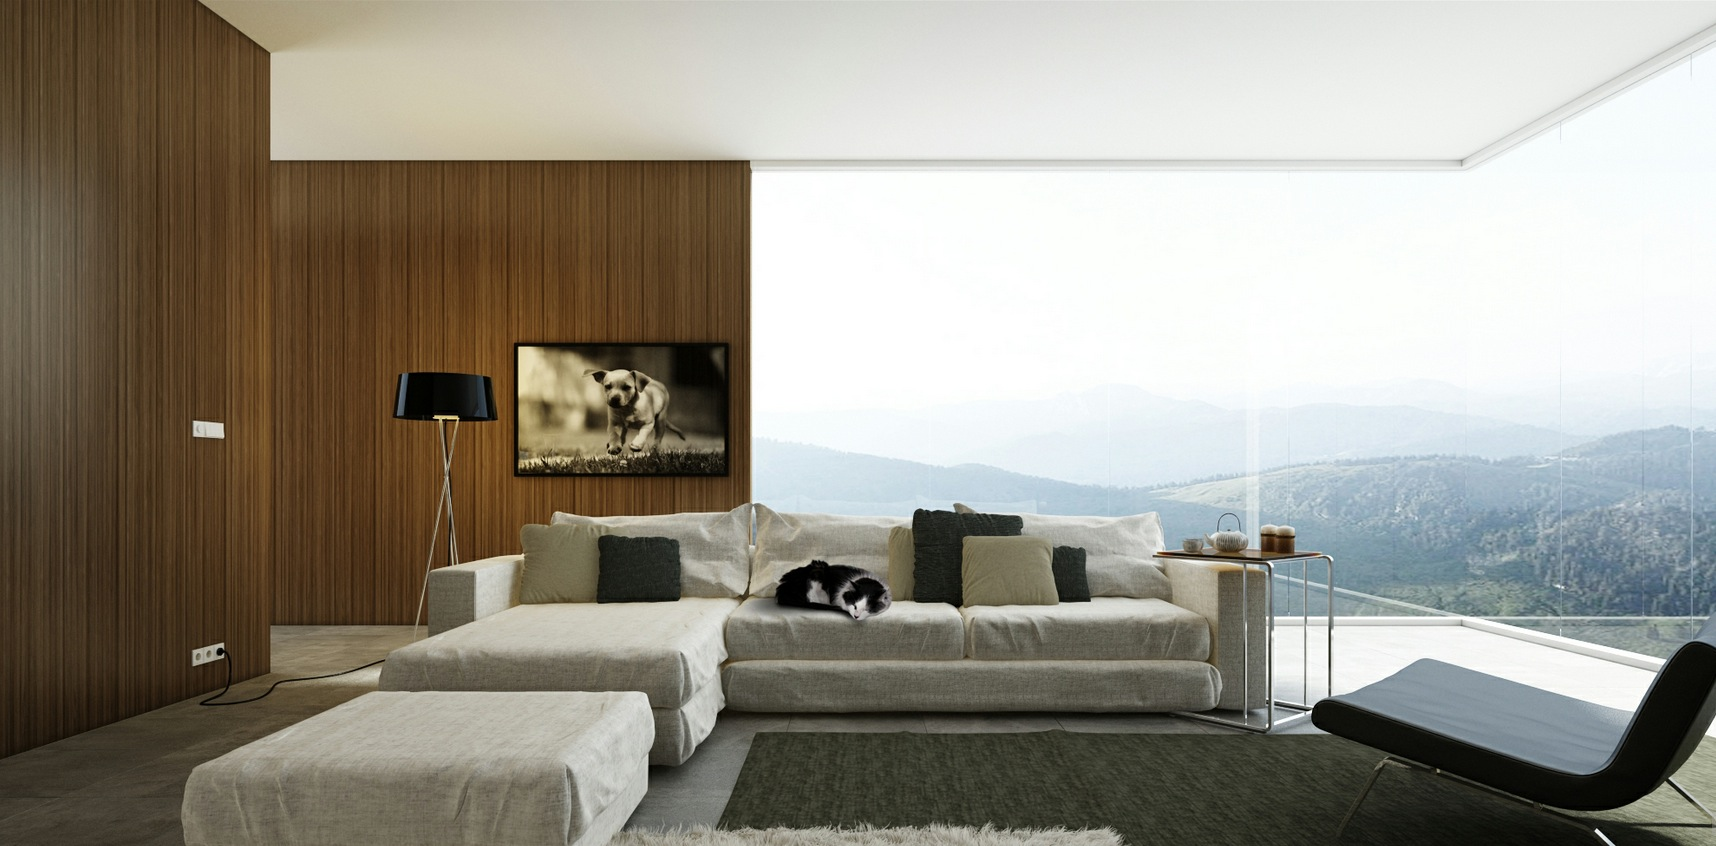 Modern Decorated Living Rooms Living Room Designs With Great View And Modern Decor Looks So